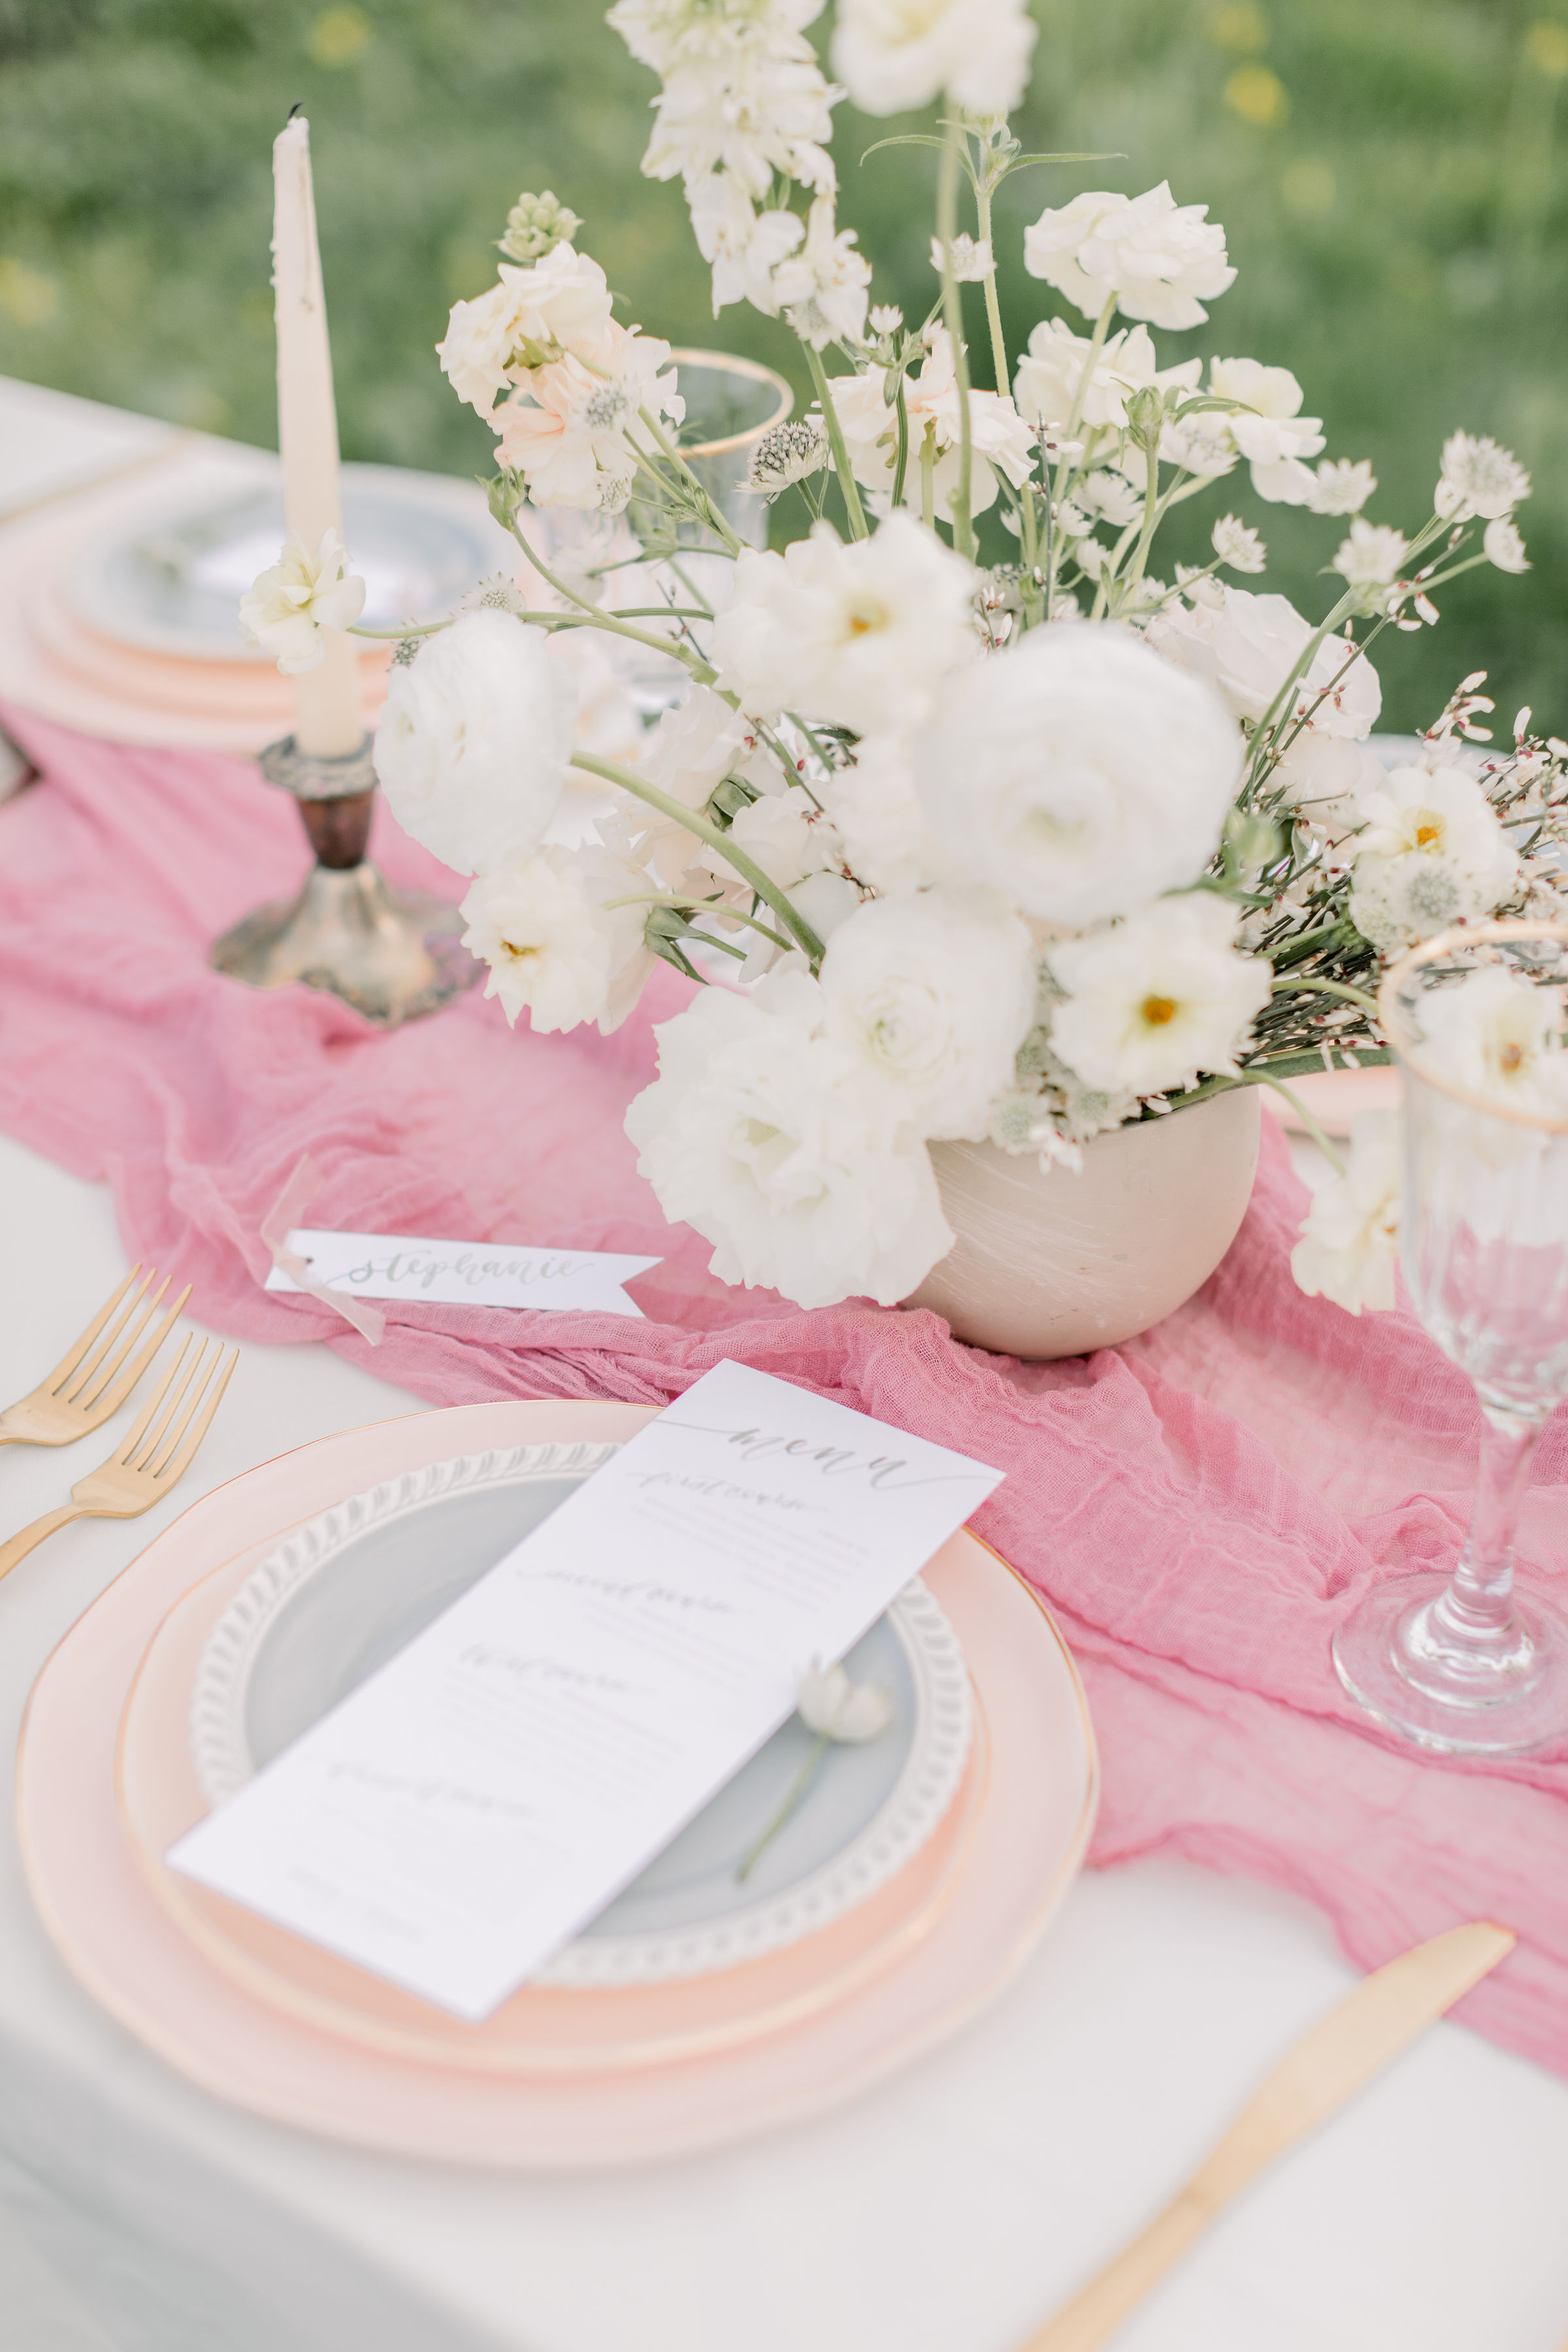 StephanieWeberPhotography-Green Wedding Reception Tablescape, Sam Allen Creates Watercolor Menus and Placecards